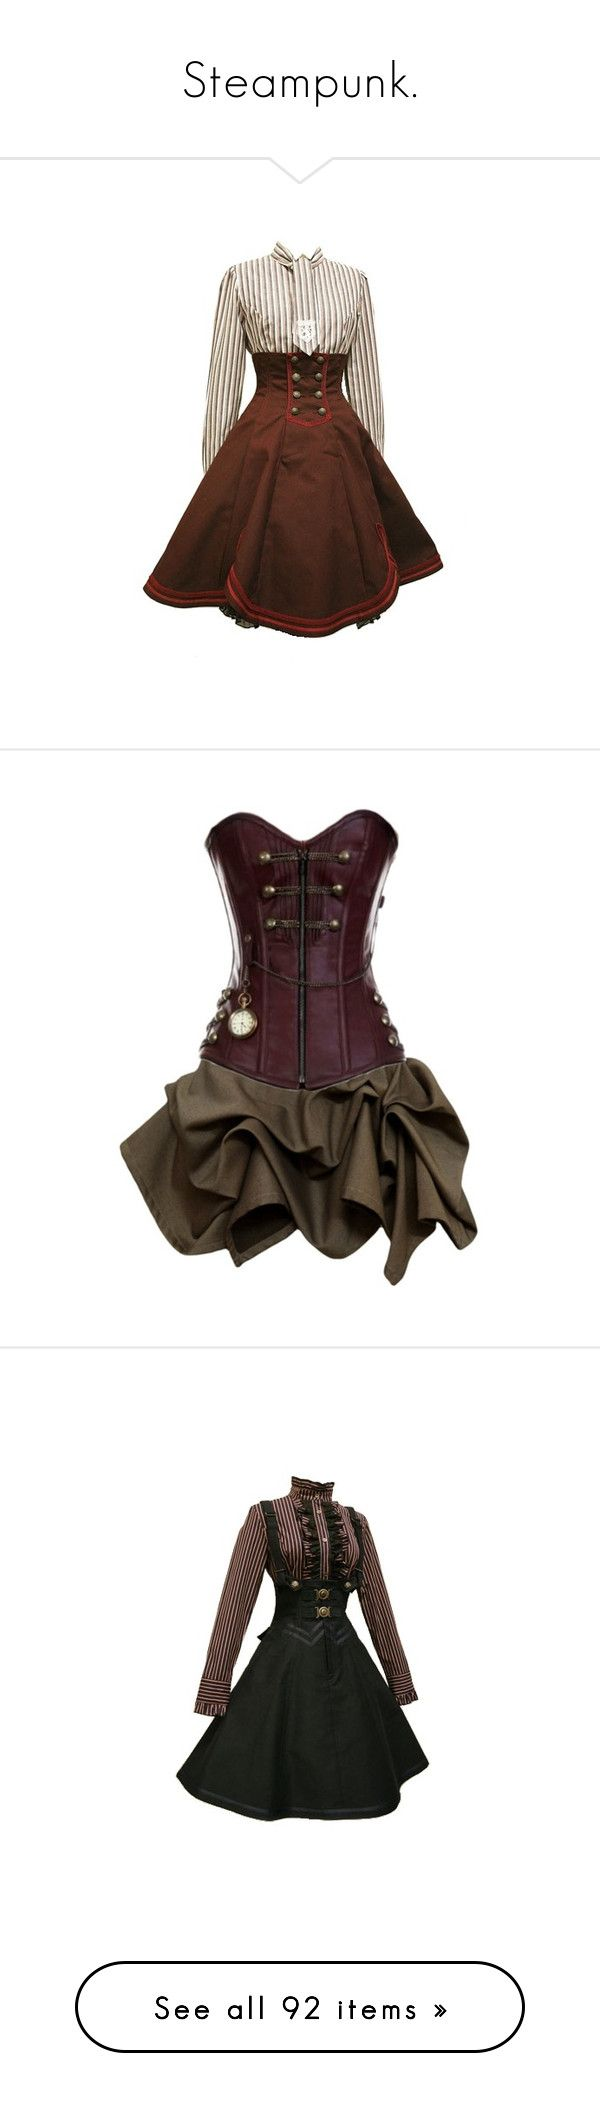 Steampunk. by waywardandwindy ❤ liked on Polyvore featuring fantasy, victorian, steampunk, fashionset, dresses, costume, short dresses, vestidos, mini dress and steampunk dress